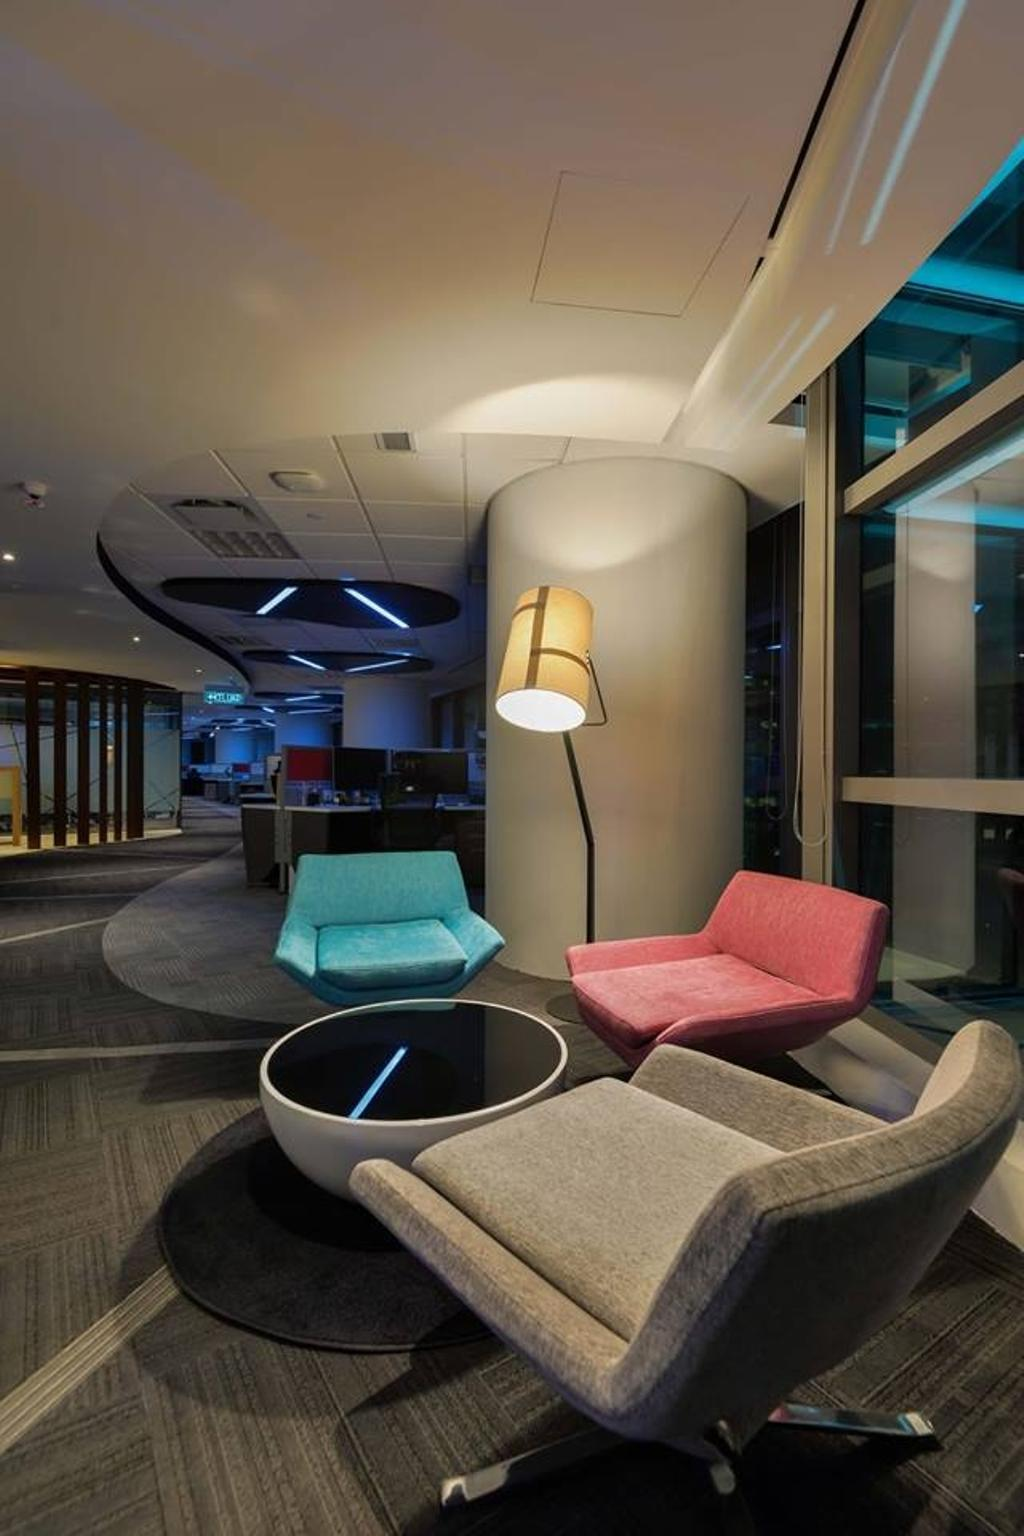 Media Innovations Services Sdn Bhd (Fetch TV), Commercial, Interior Designer, Dot Works, Modern, Contemporary, Chair, Furniture, Couch, Lighting